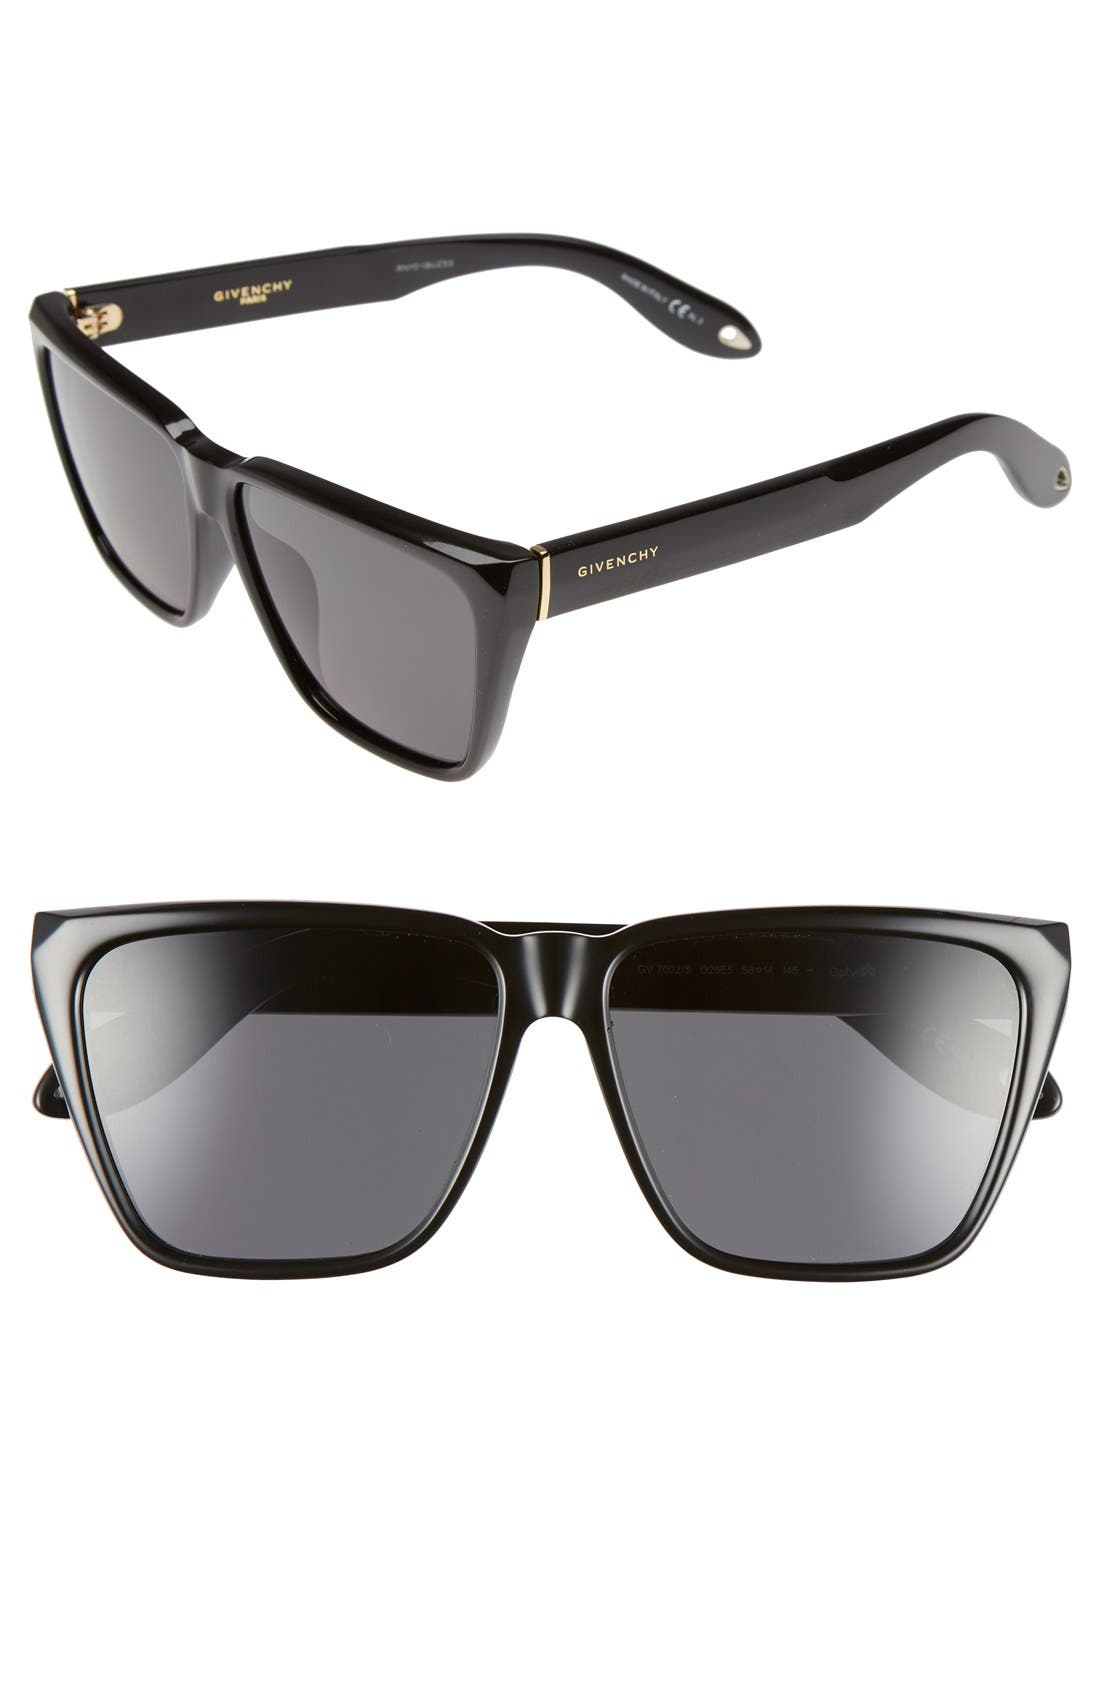 GIVENCHY 58mm Flat Top Sunglasses, Main, color, BLACK/ GREY